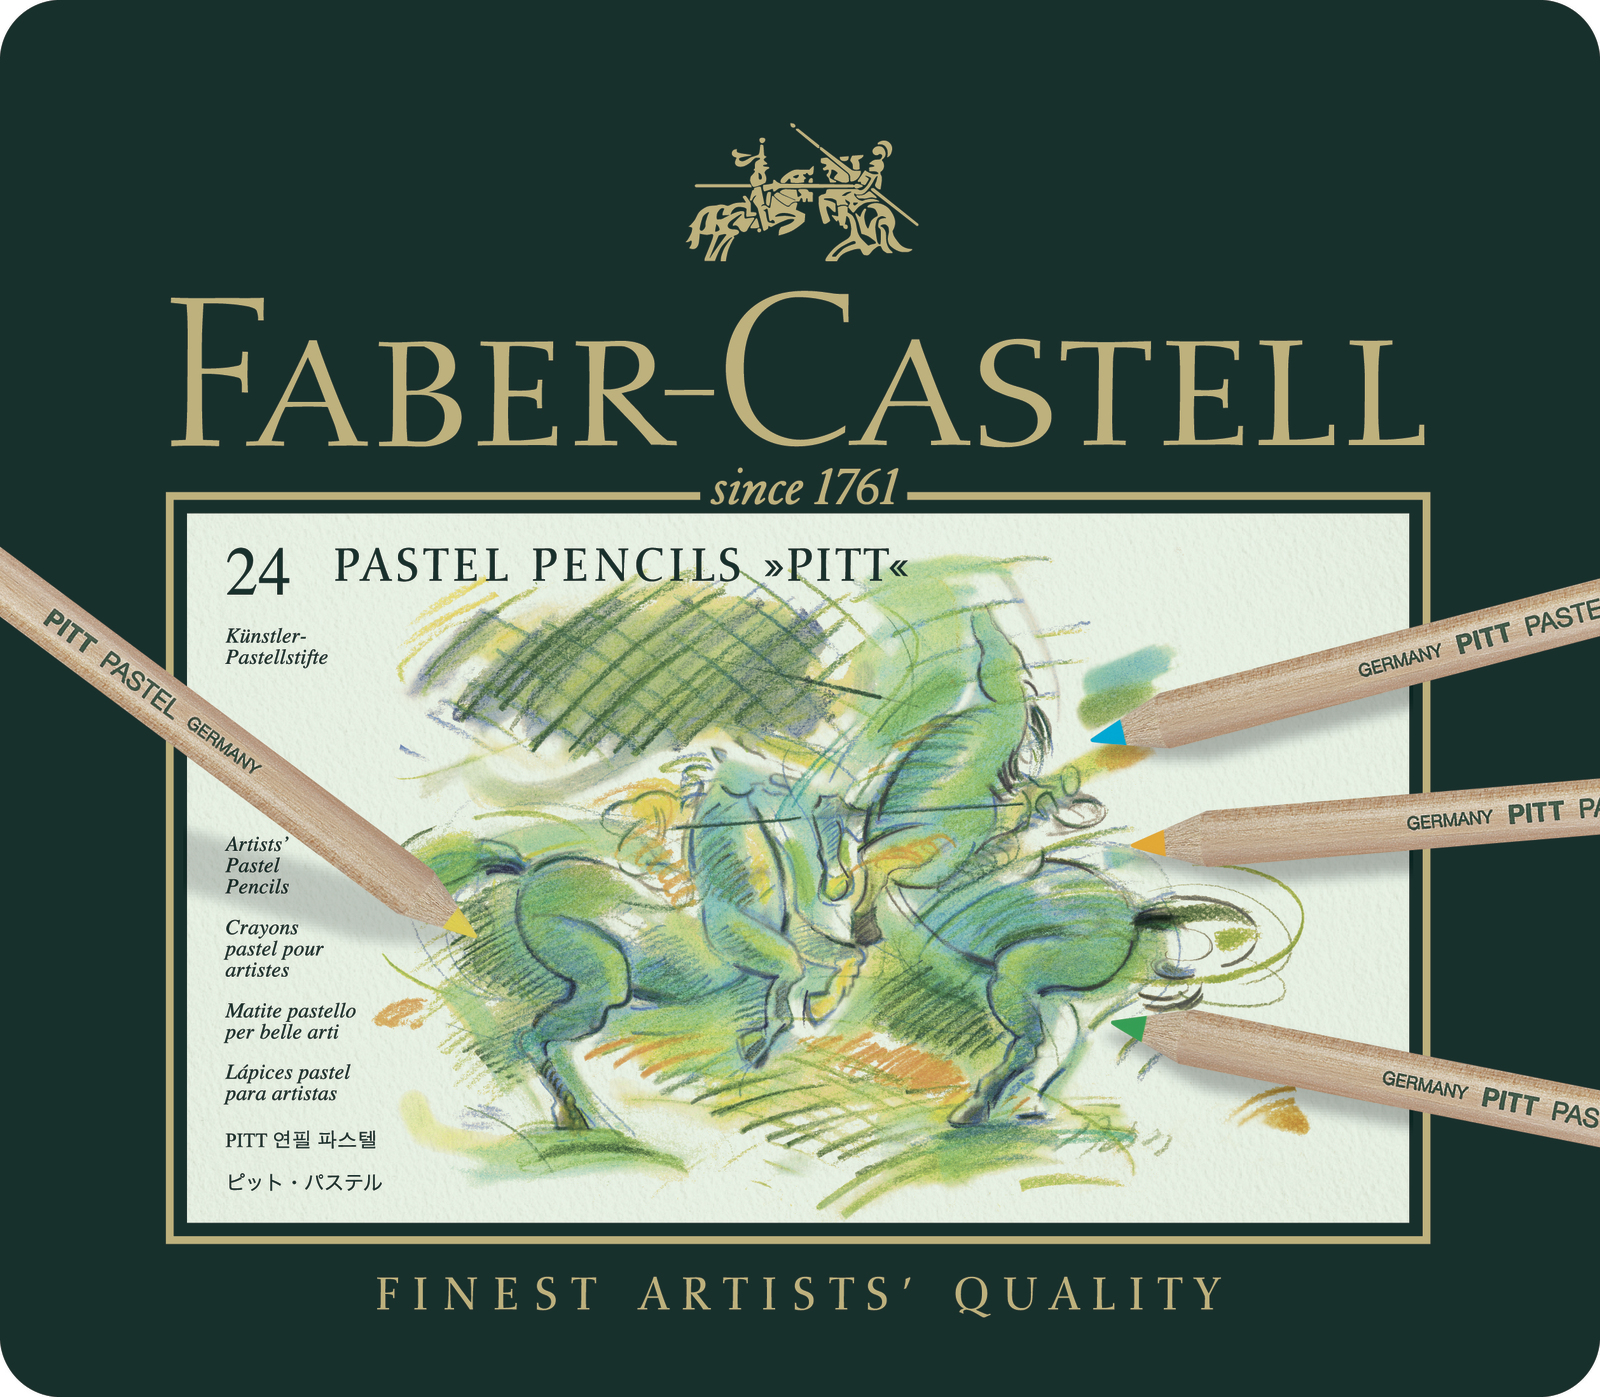 Faber-Castell: Pitt Pastel Pencil (Tin of 24) image